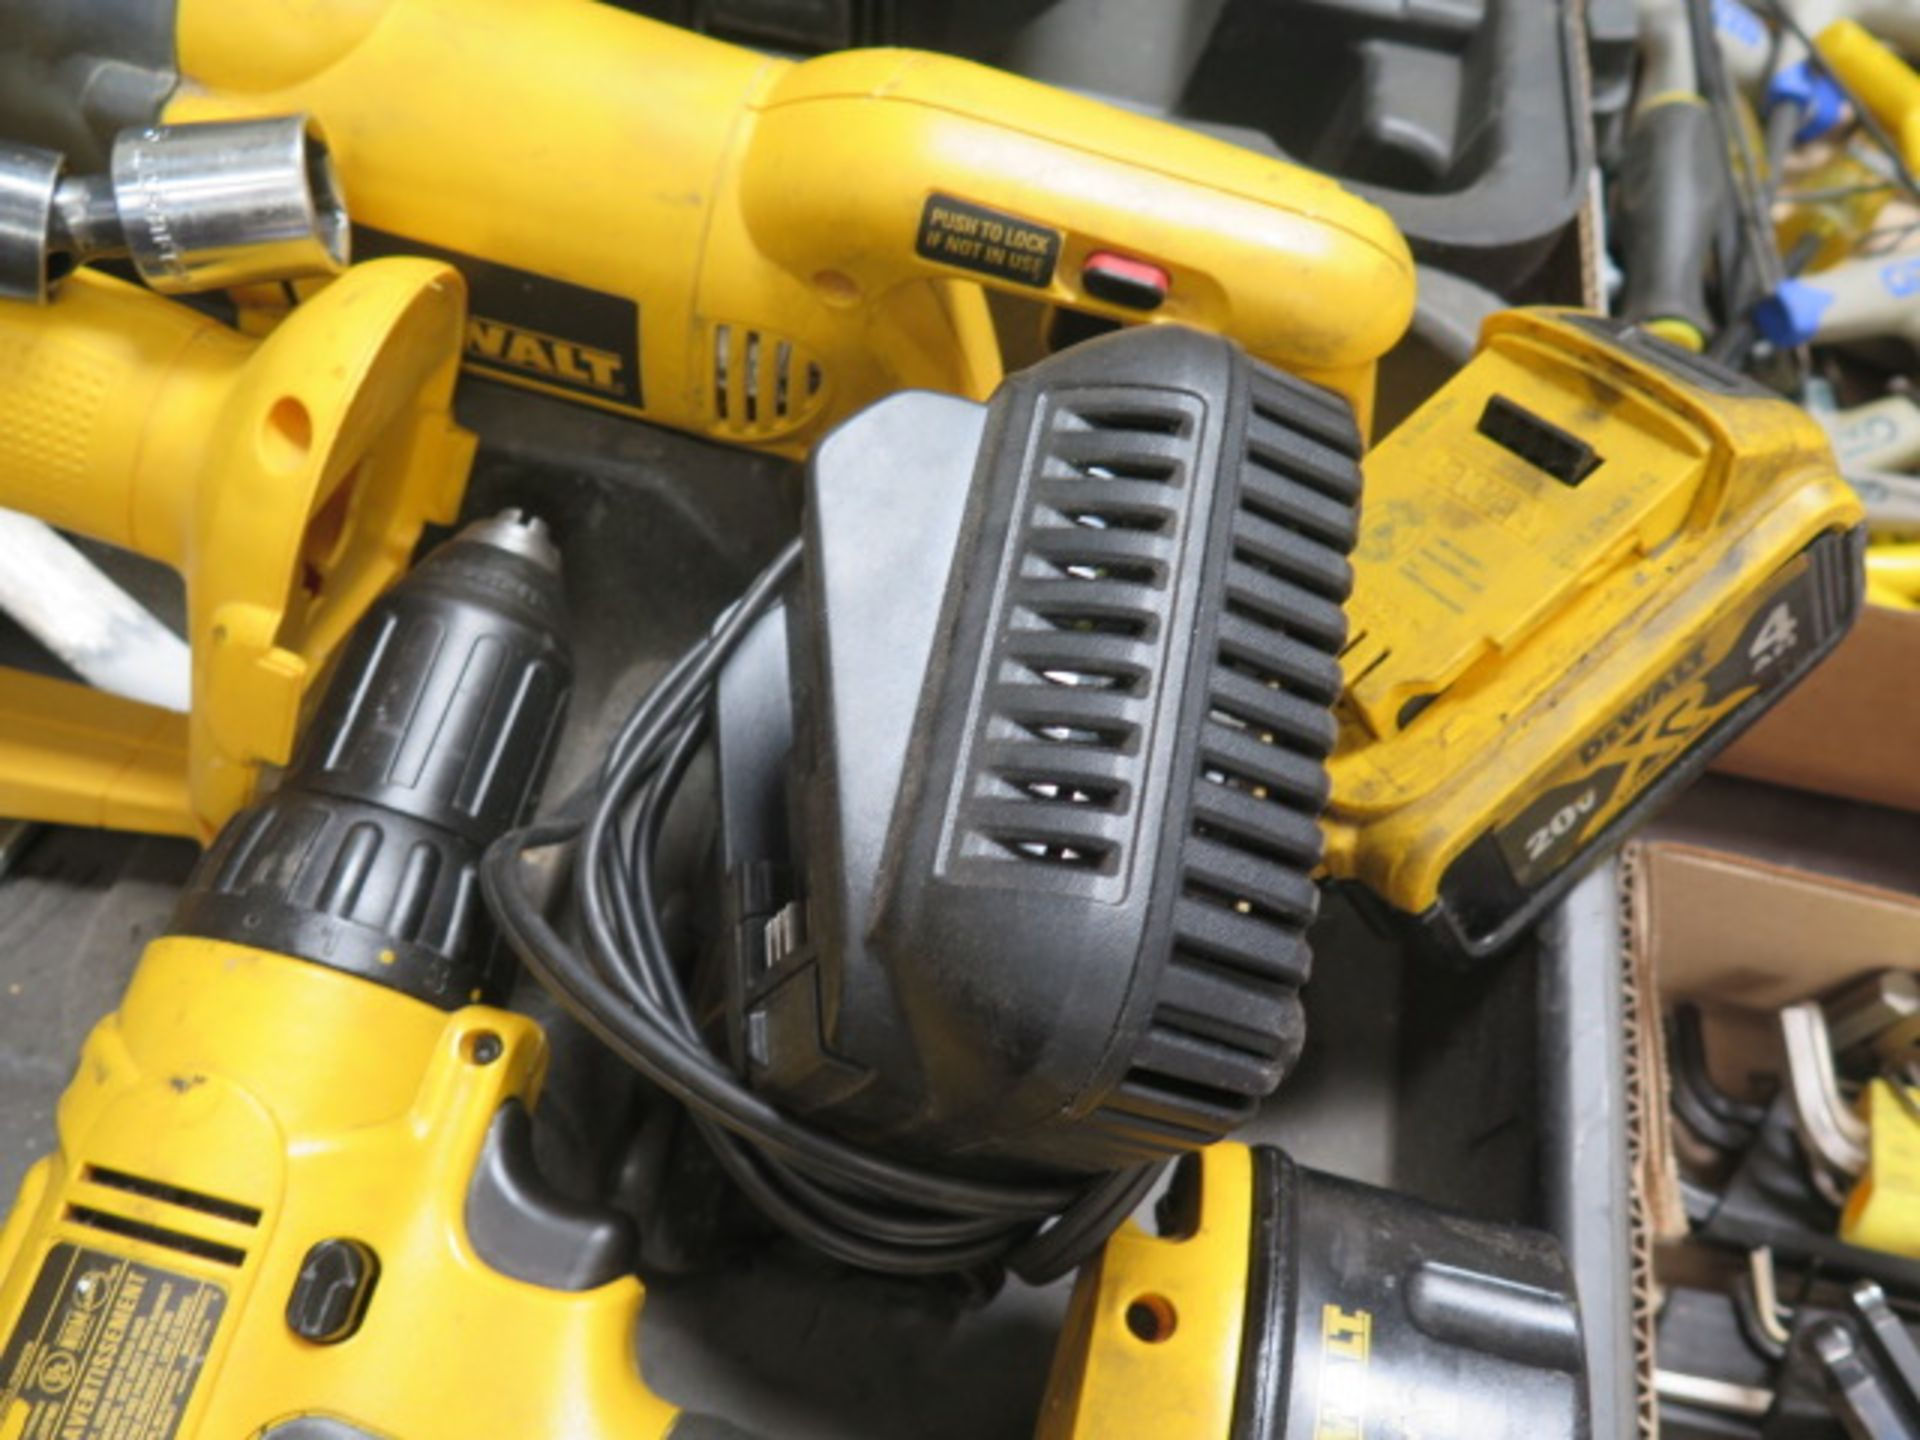 DeWalt Cordless Tools w/ Charger (SOLD AS-IS - NO WARRANTY) - Image 9 of 9